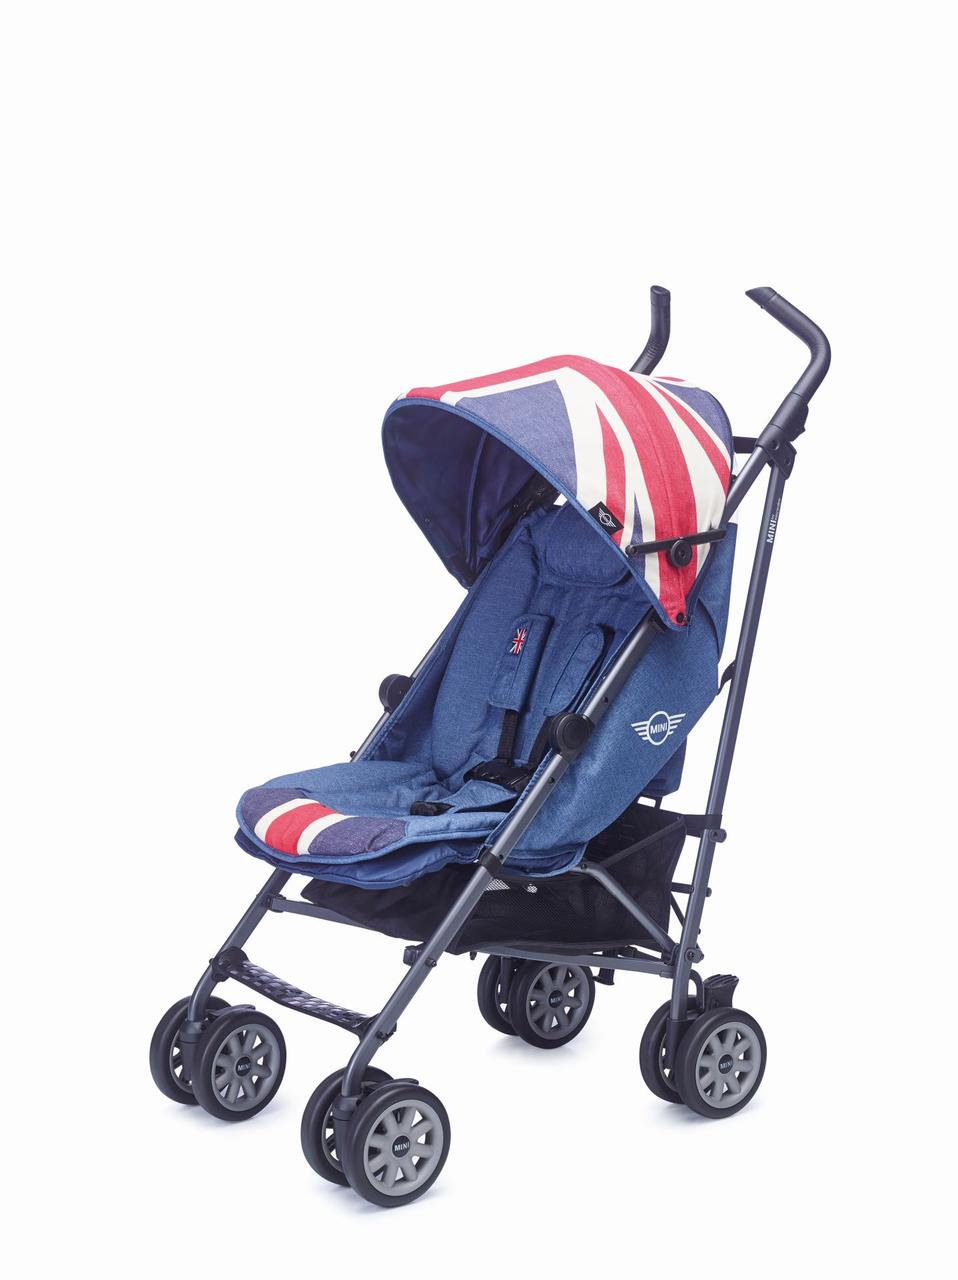 Прогулочная коляска, Mini Buggy Union Jack Vintage, Easywalker EMB10021